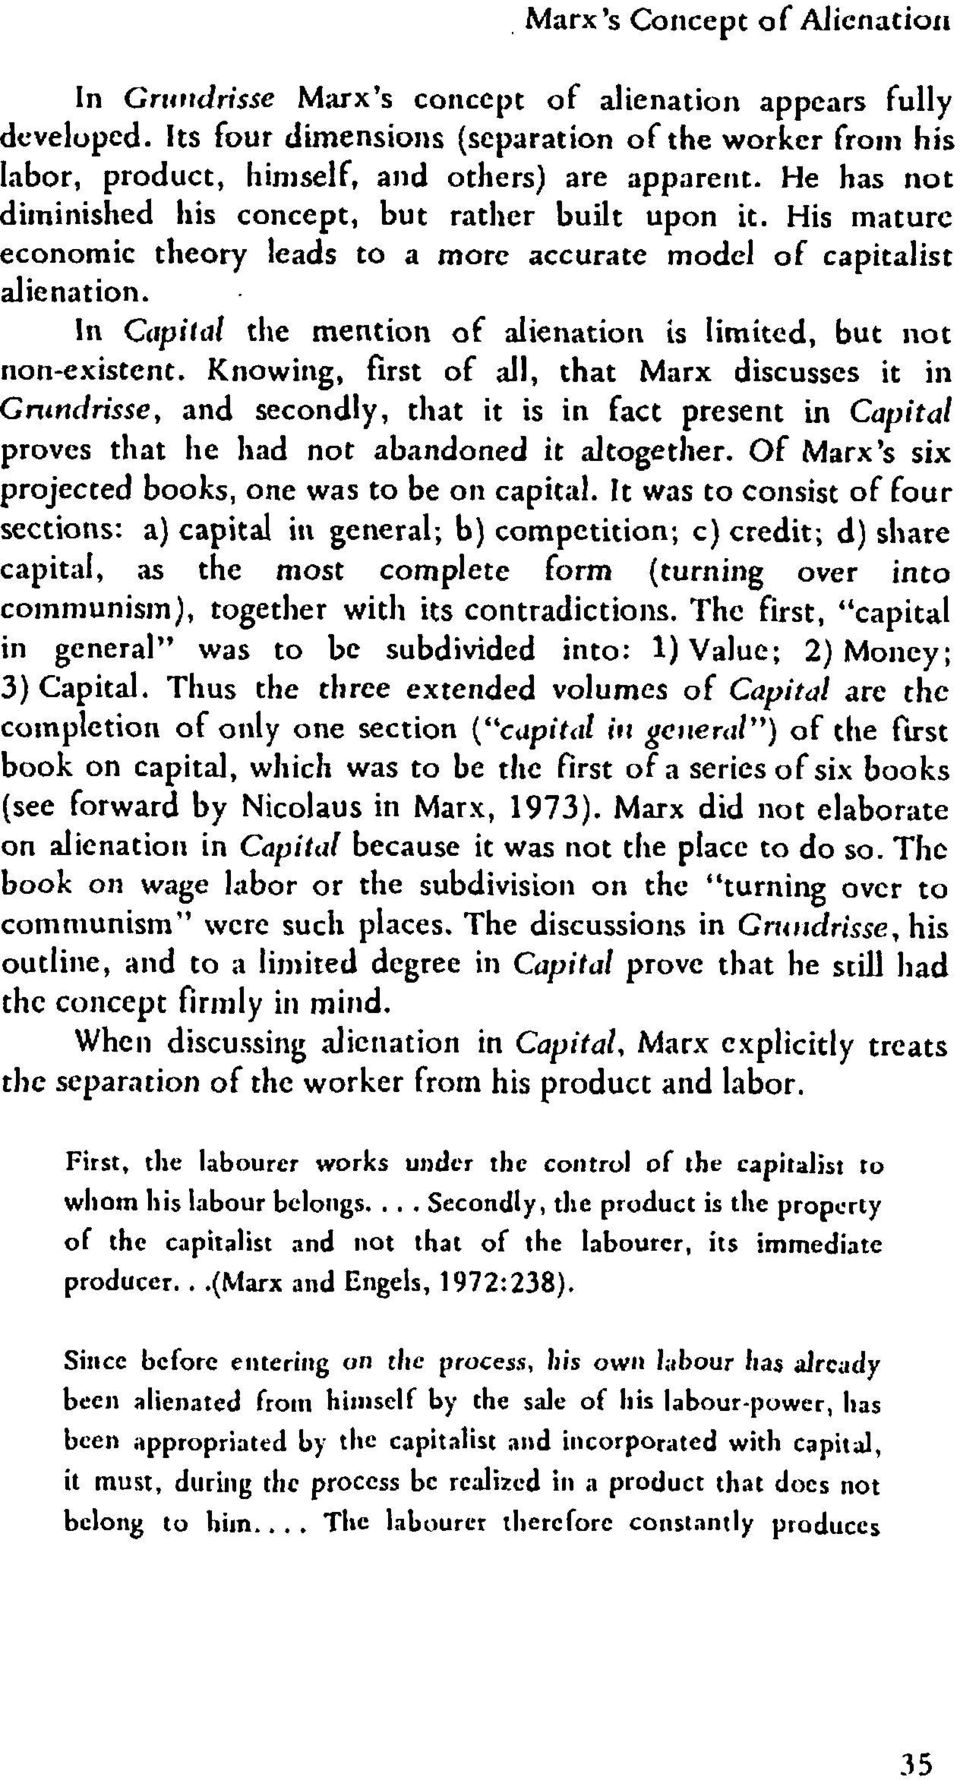 marxs theory of alienation essay Marx's theory of alienation according to marx, alienation is a systemic result of capitalism marx's theory of alienation is founded upon his observation that, within.